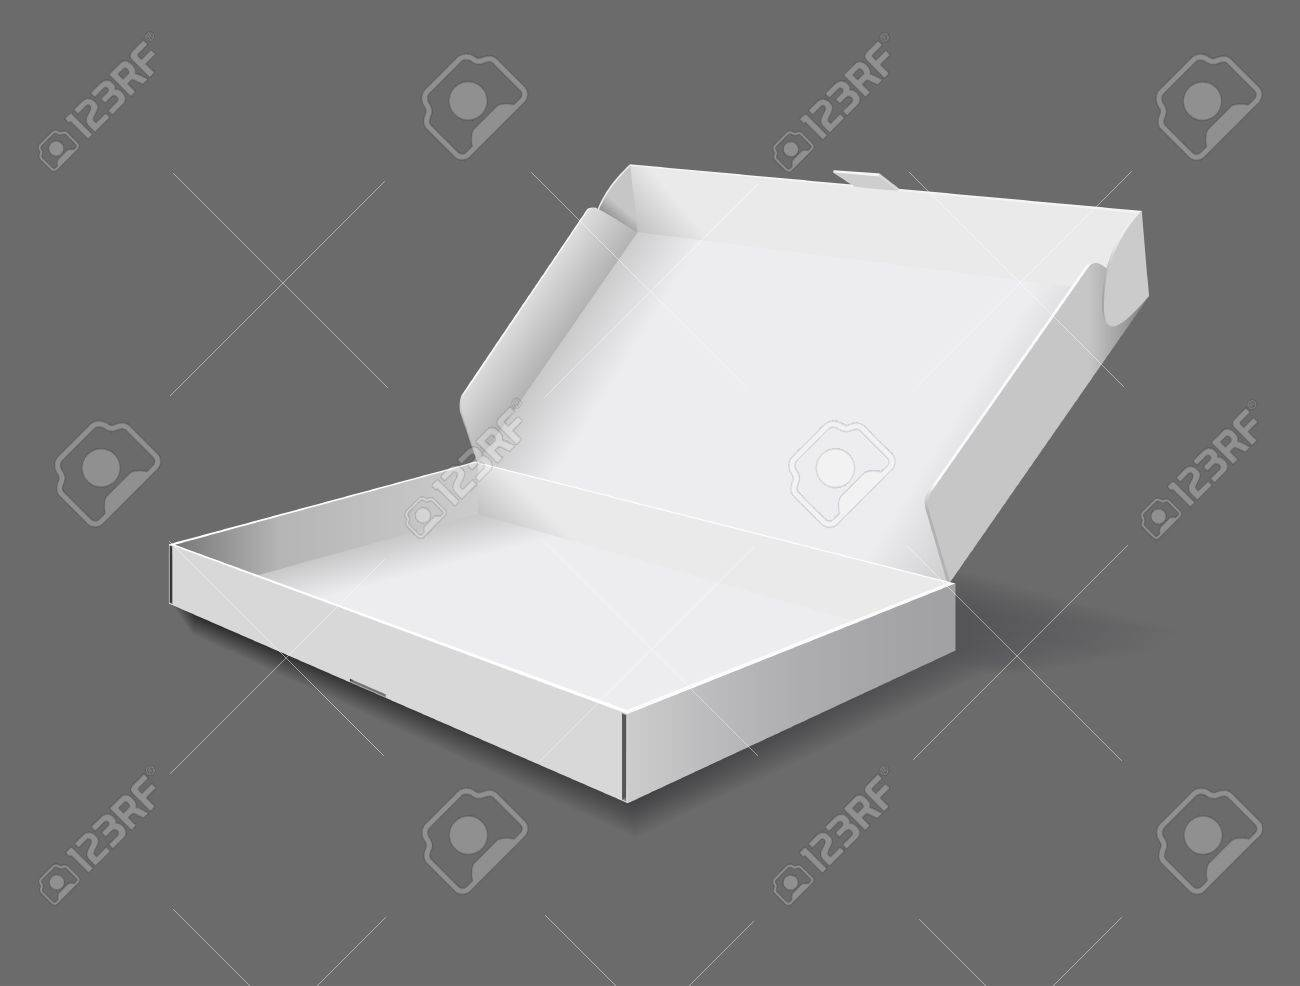 The packaging box on grey background is shown in the picture. Stock Vector - 9275069